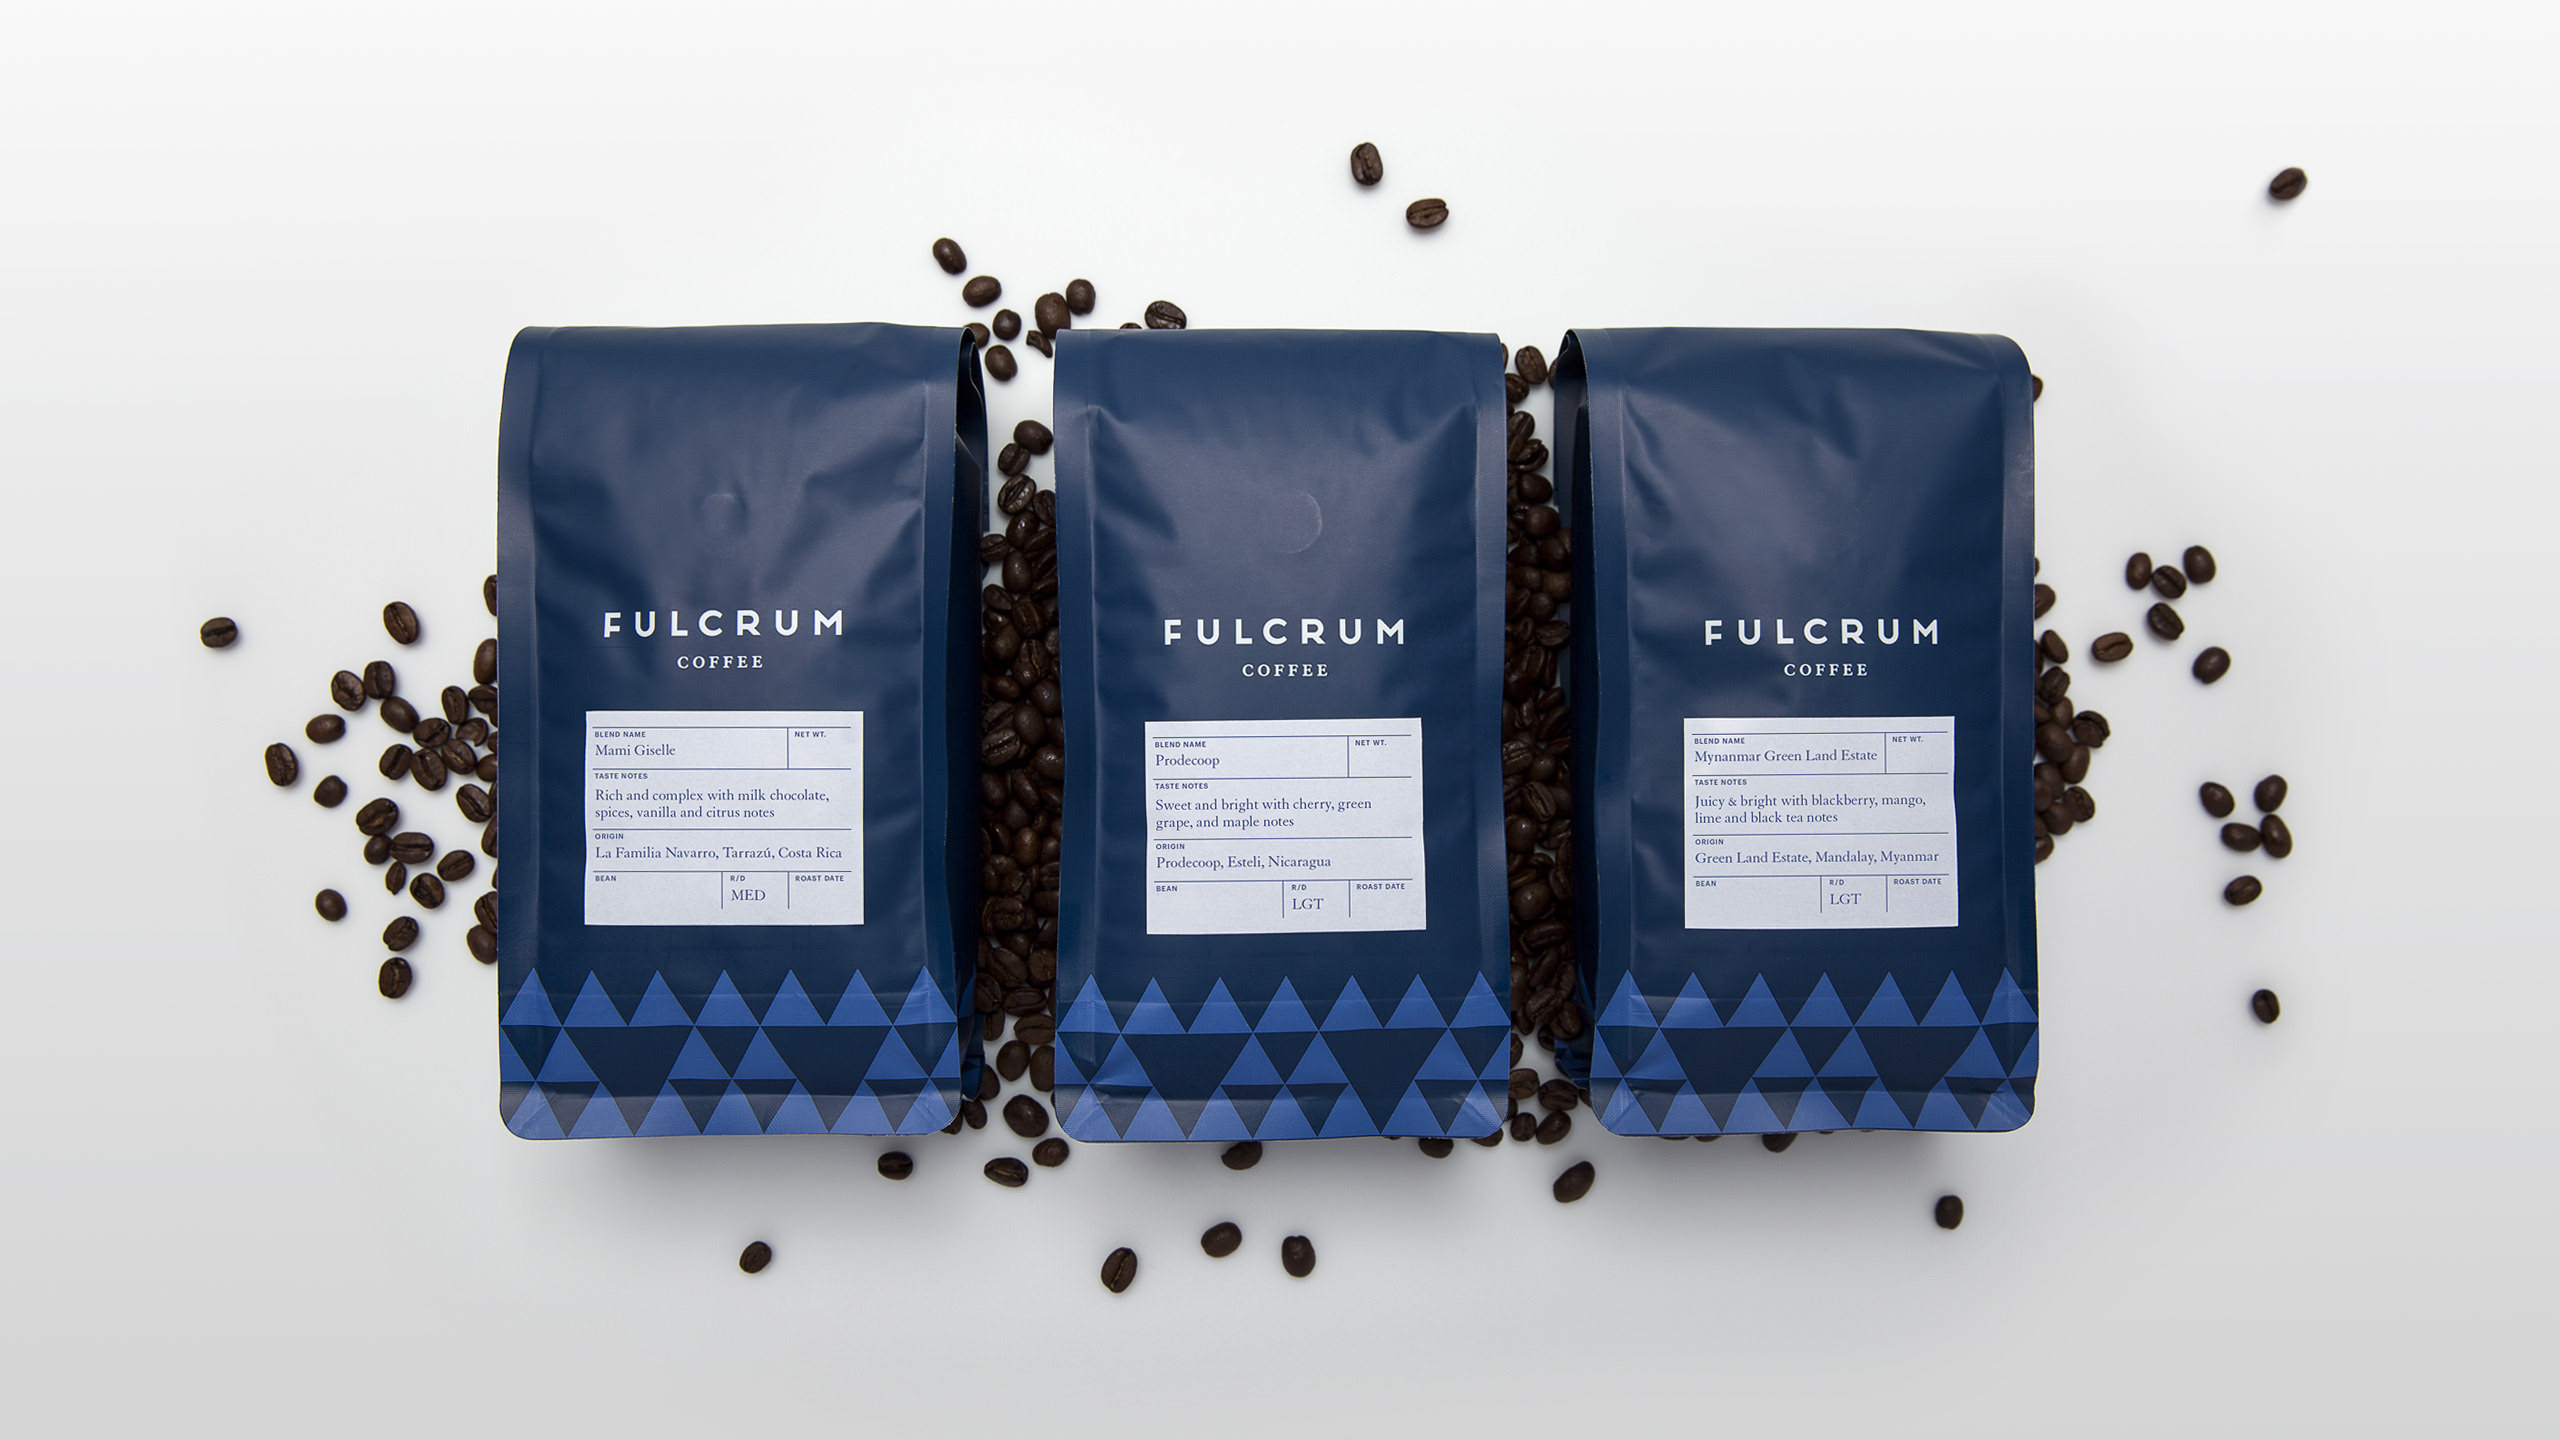 tolleson-case-study-fulcrum-coffee-package-16